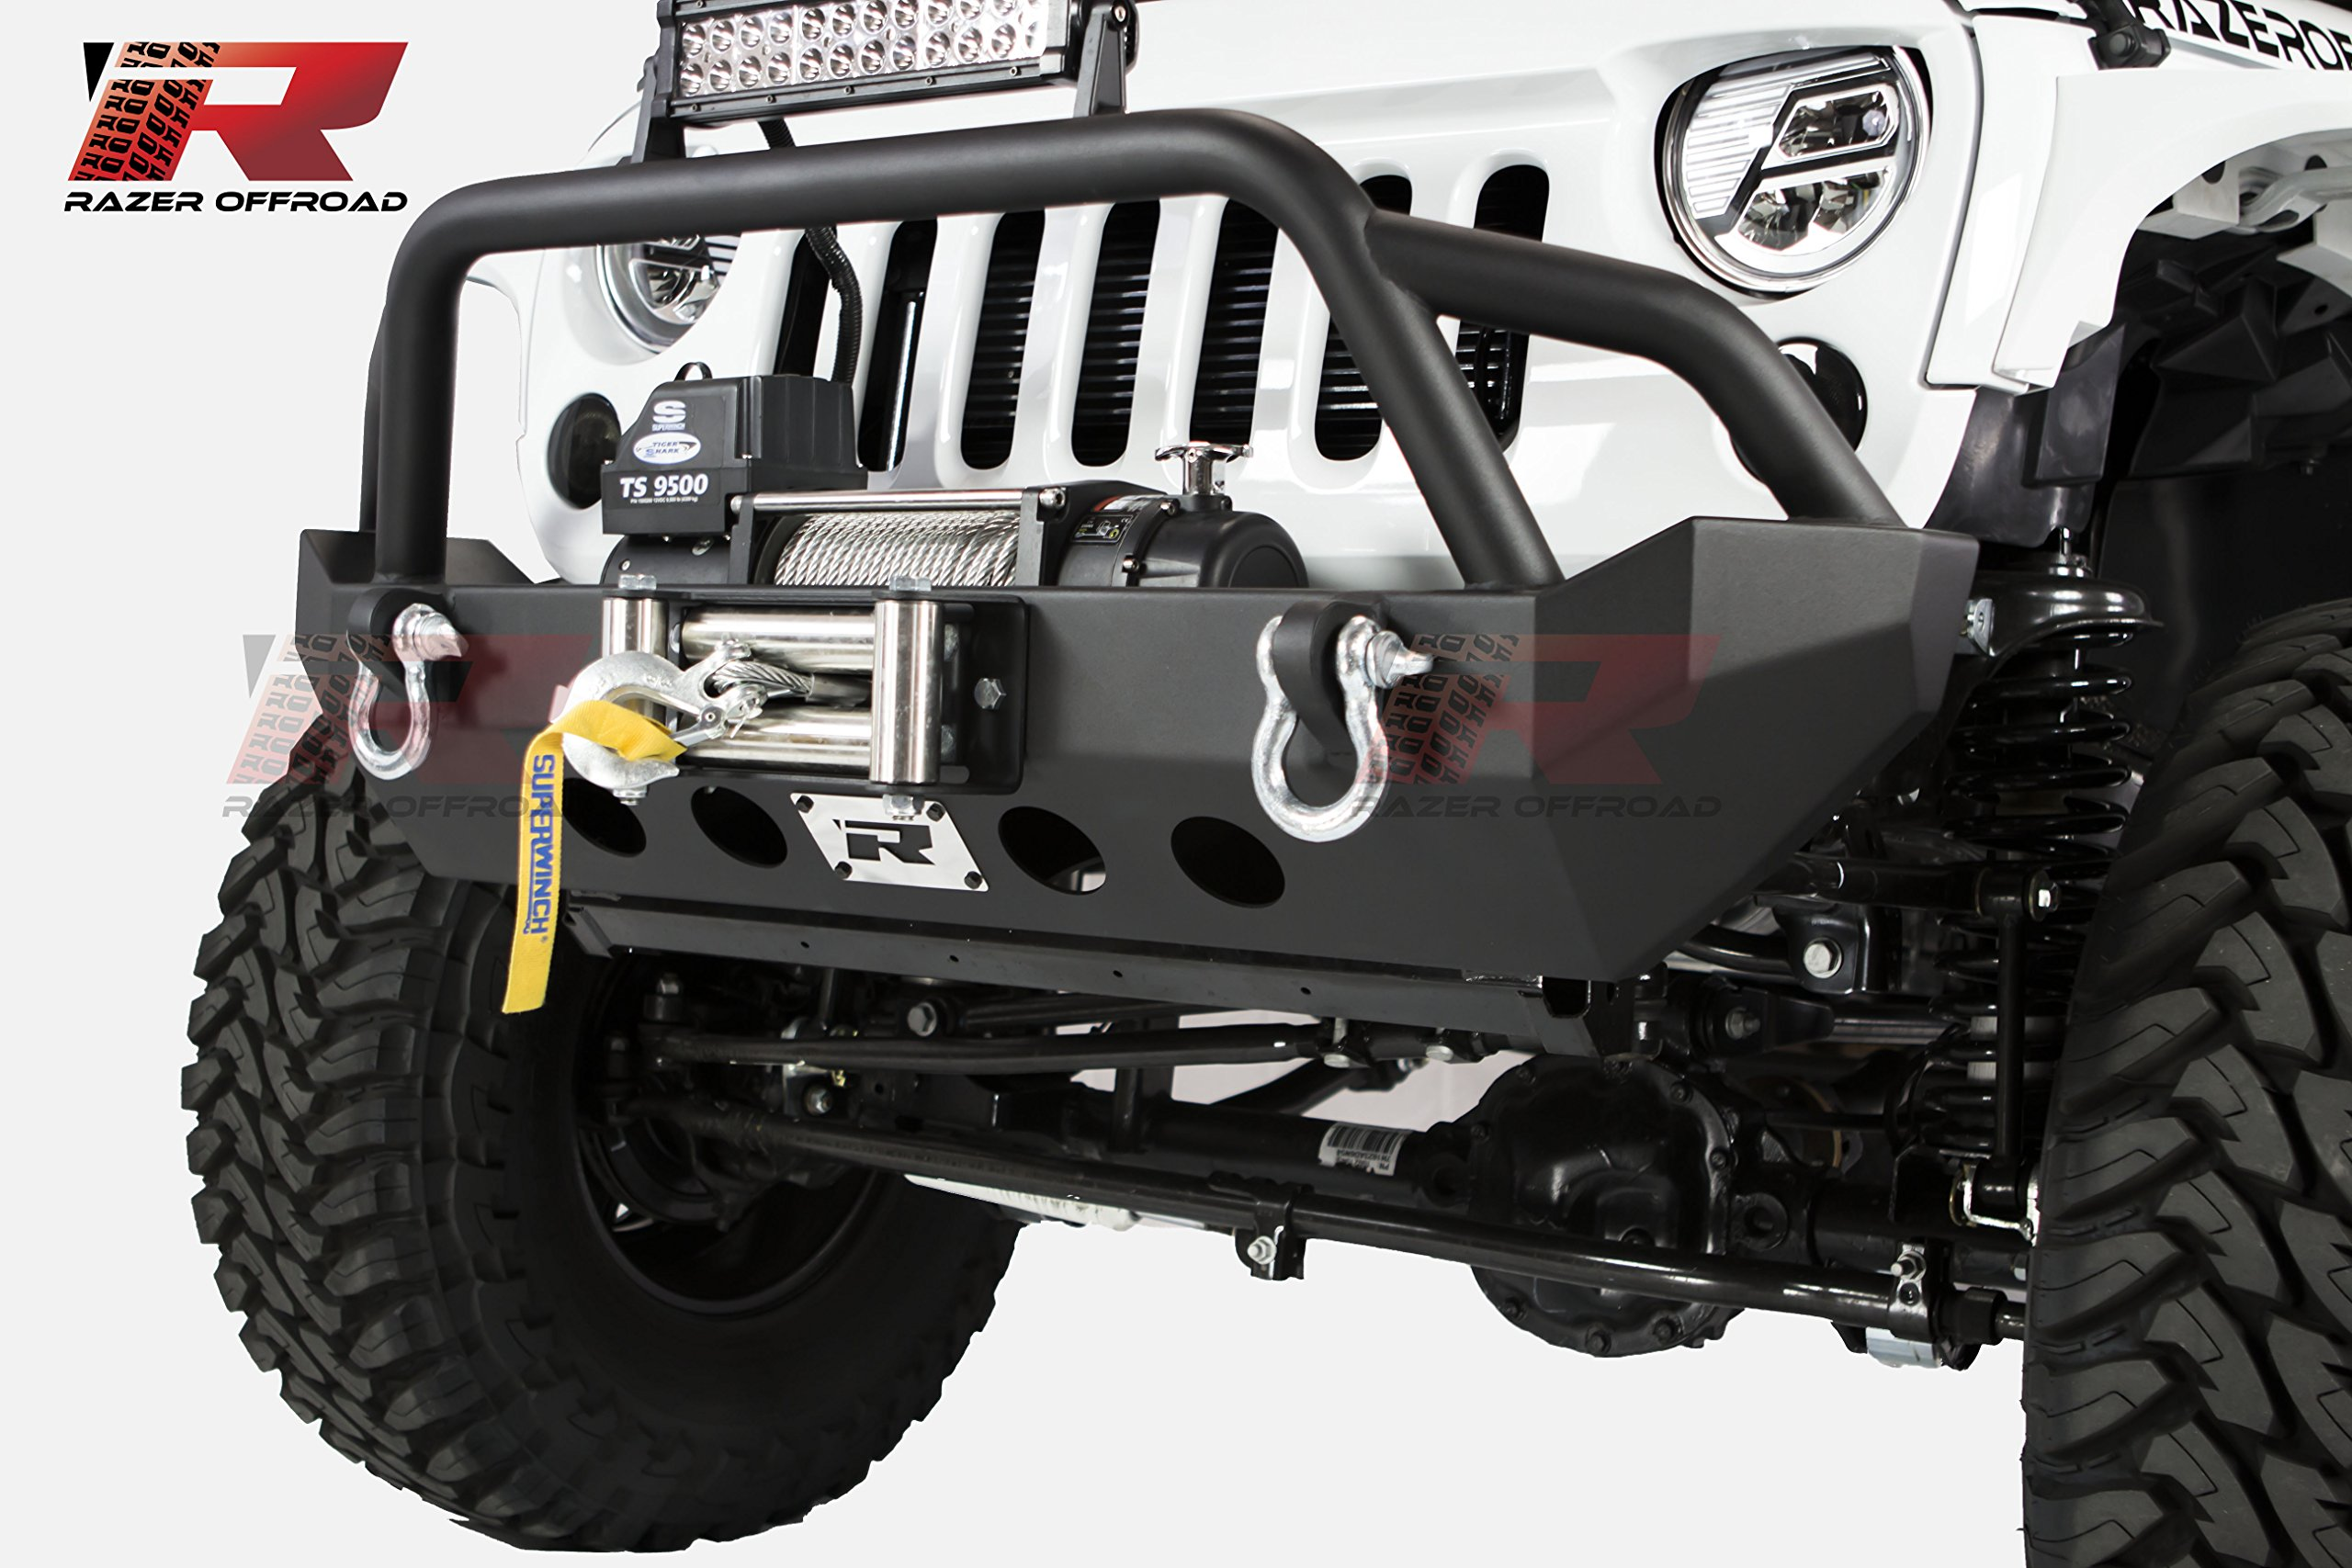 Razer Auto 07-17 Jeep Wrangler JK Black Textured Rock Crawler Stubby Front Bumper With 2x D-Ring & Winch Plate